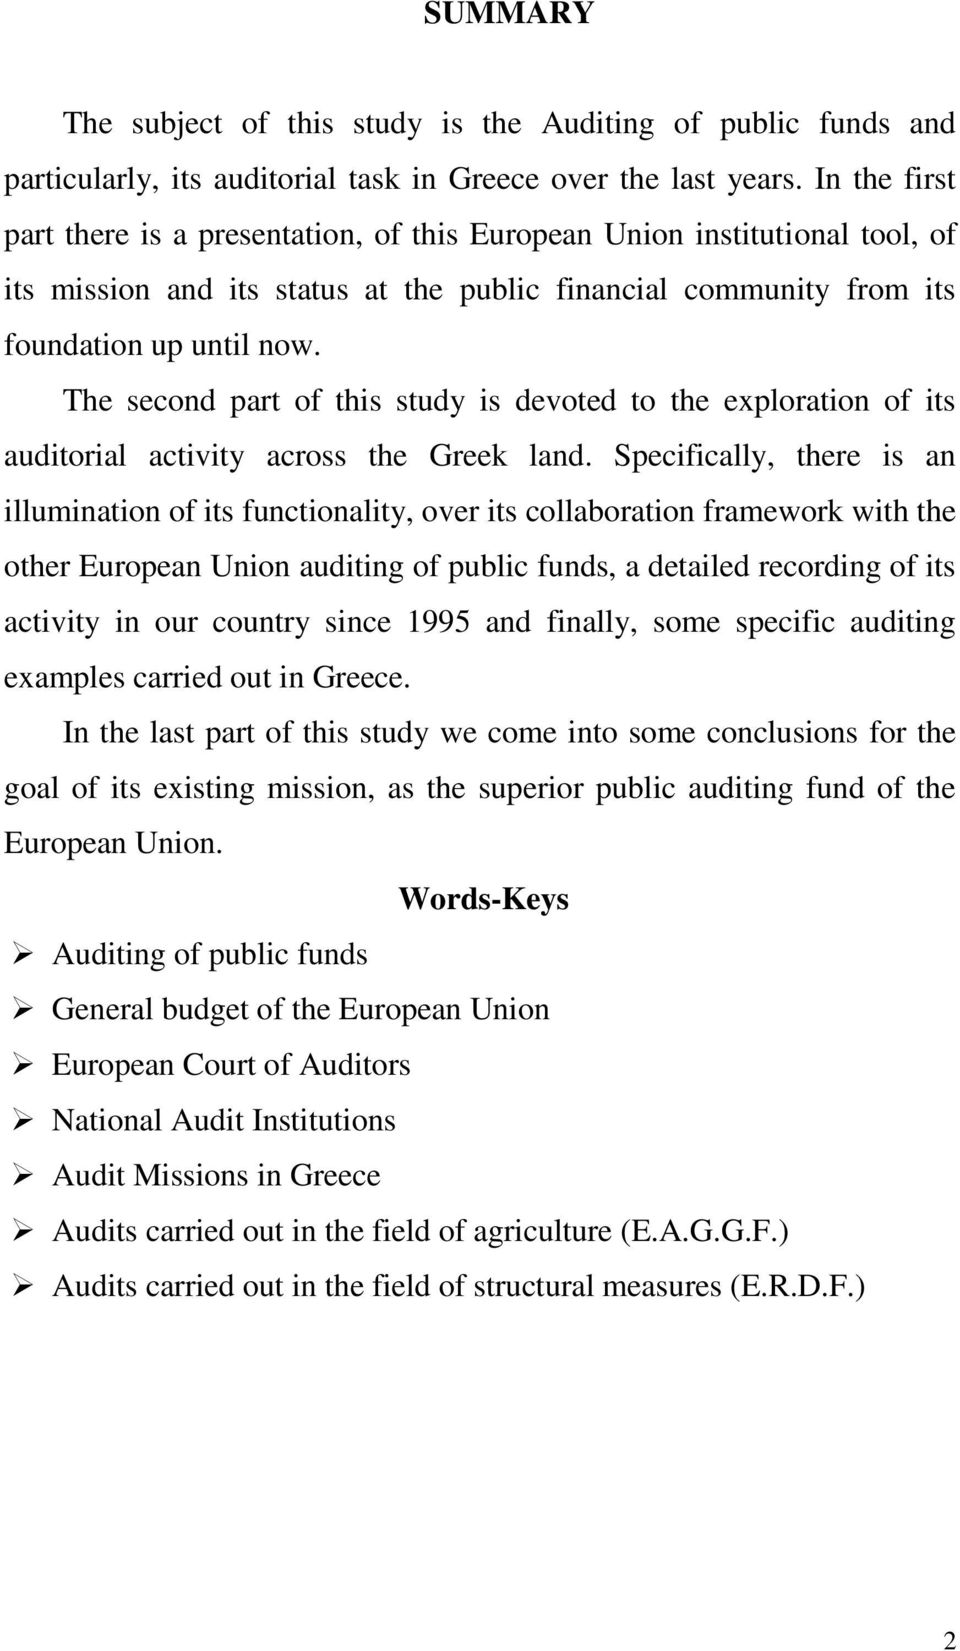 The second part of this study is devoted to the exploration of its auditorial activity across the Greek land.